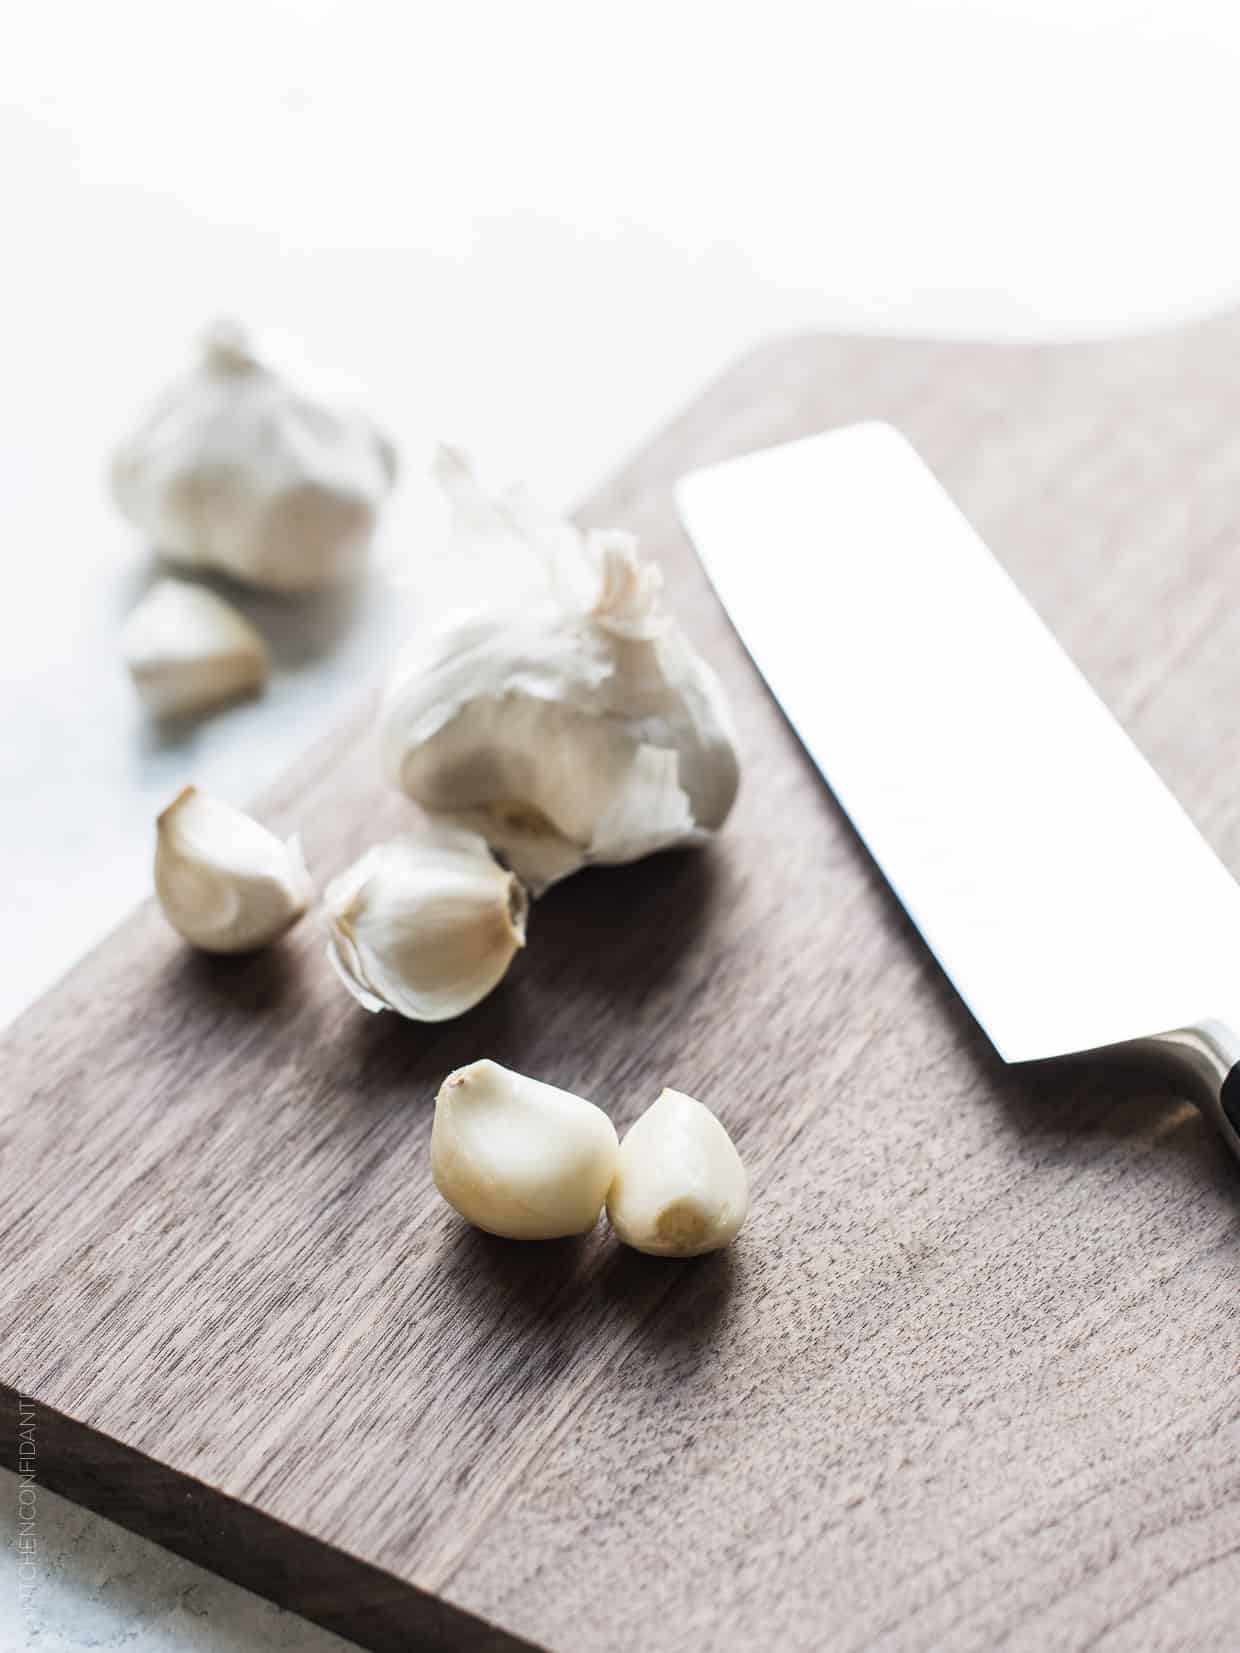 Fresh garlic cloves on a wooden cutting board with a chef's knife.